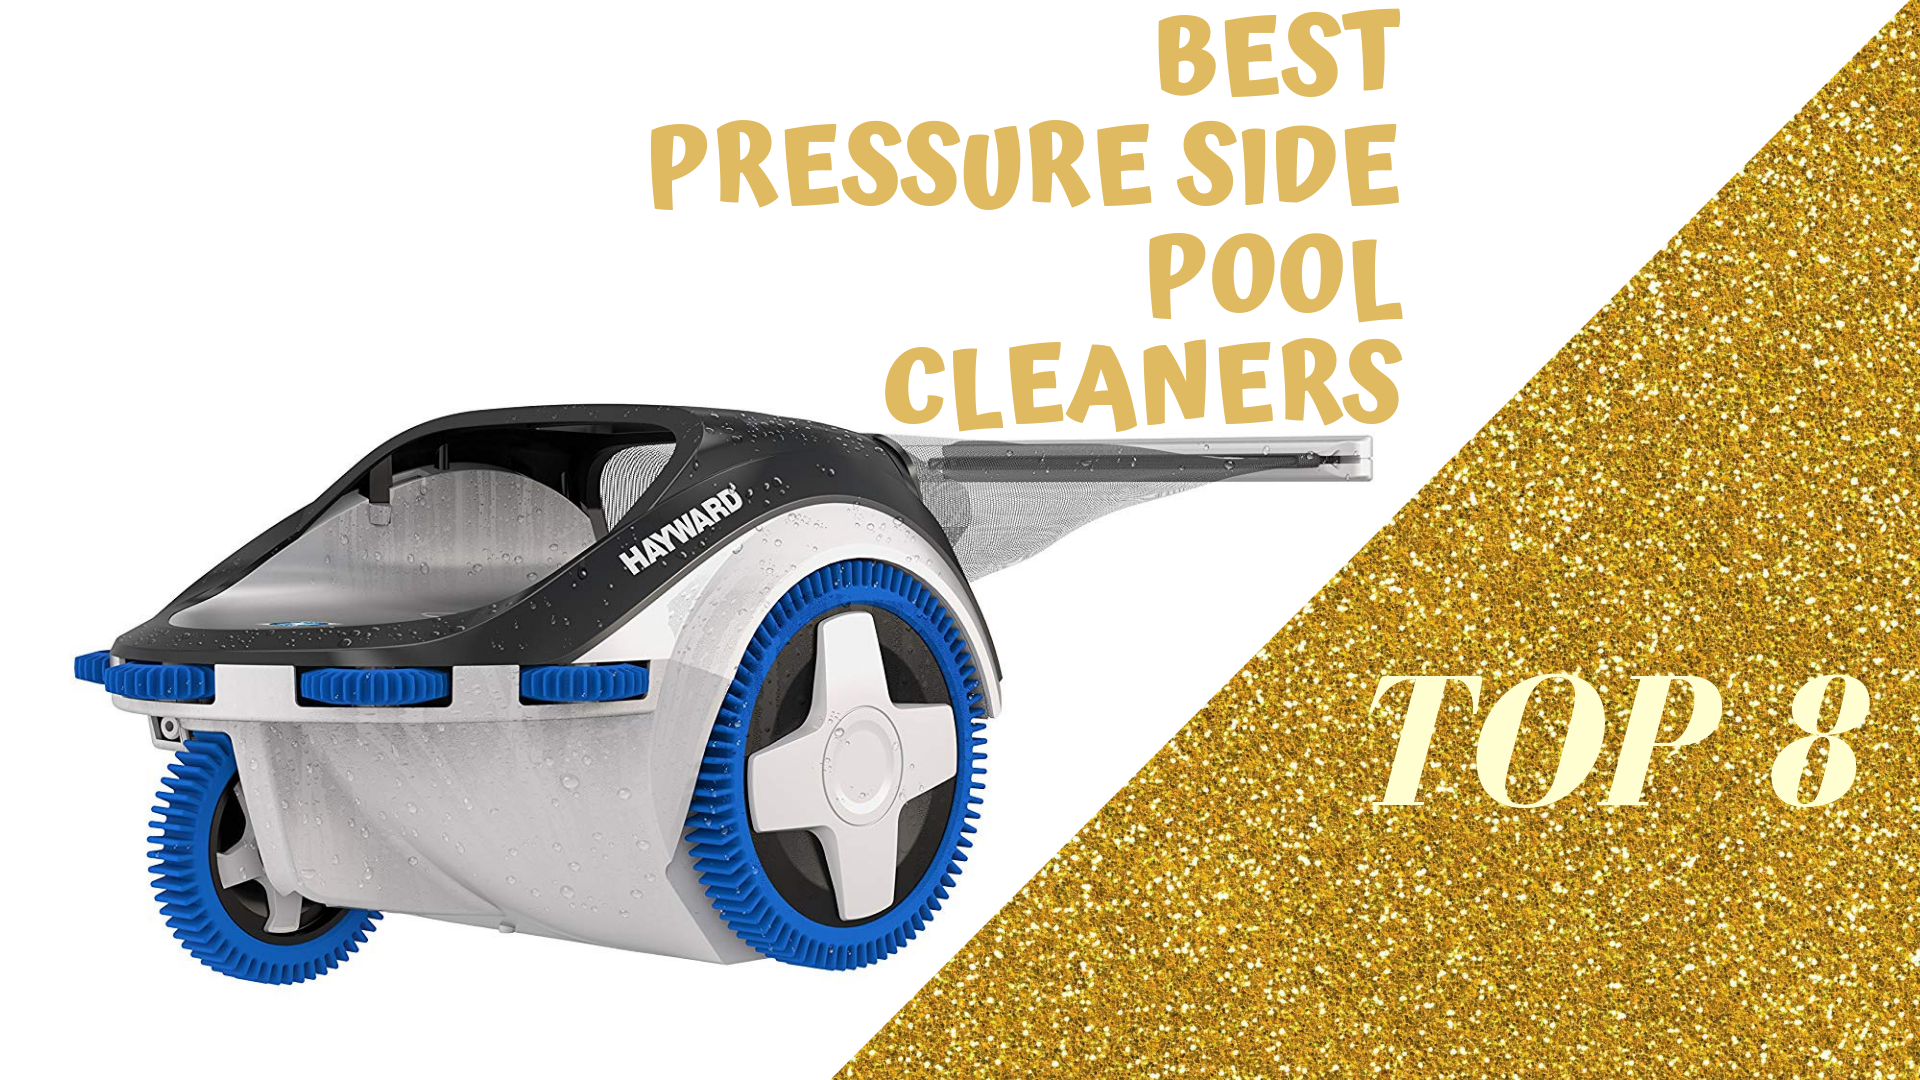 BEST PRESSURE SIDE POOL CLEANERS